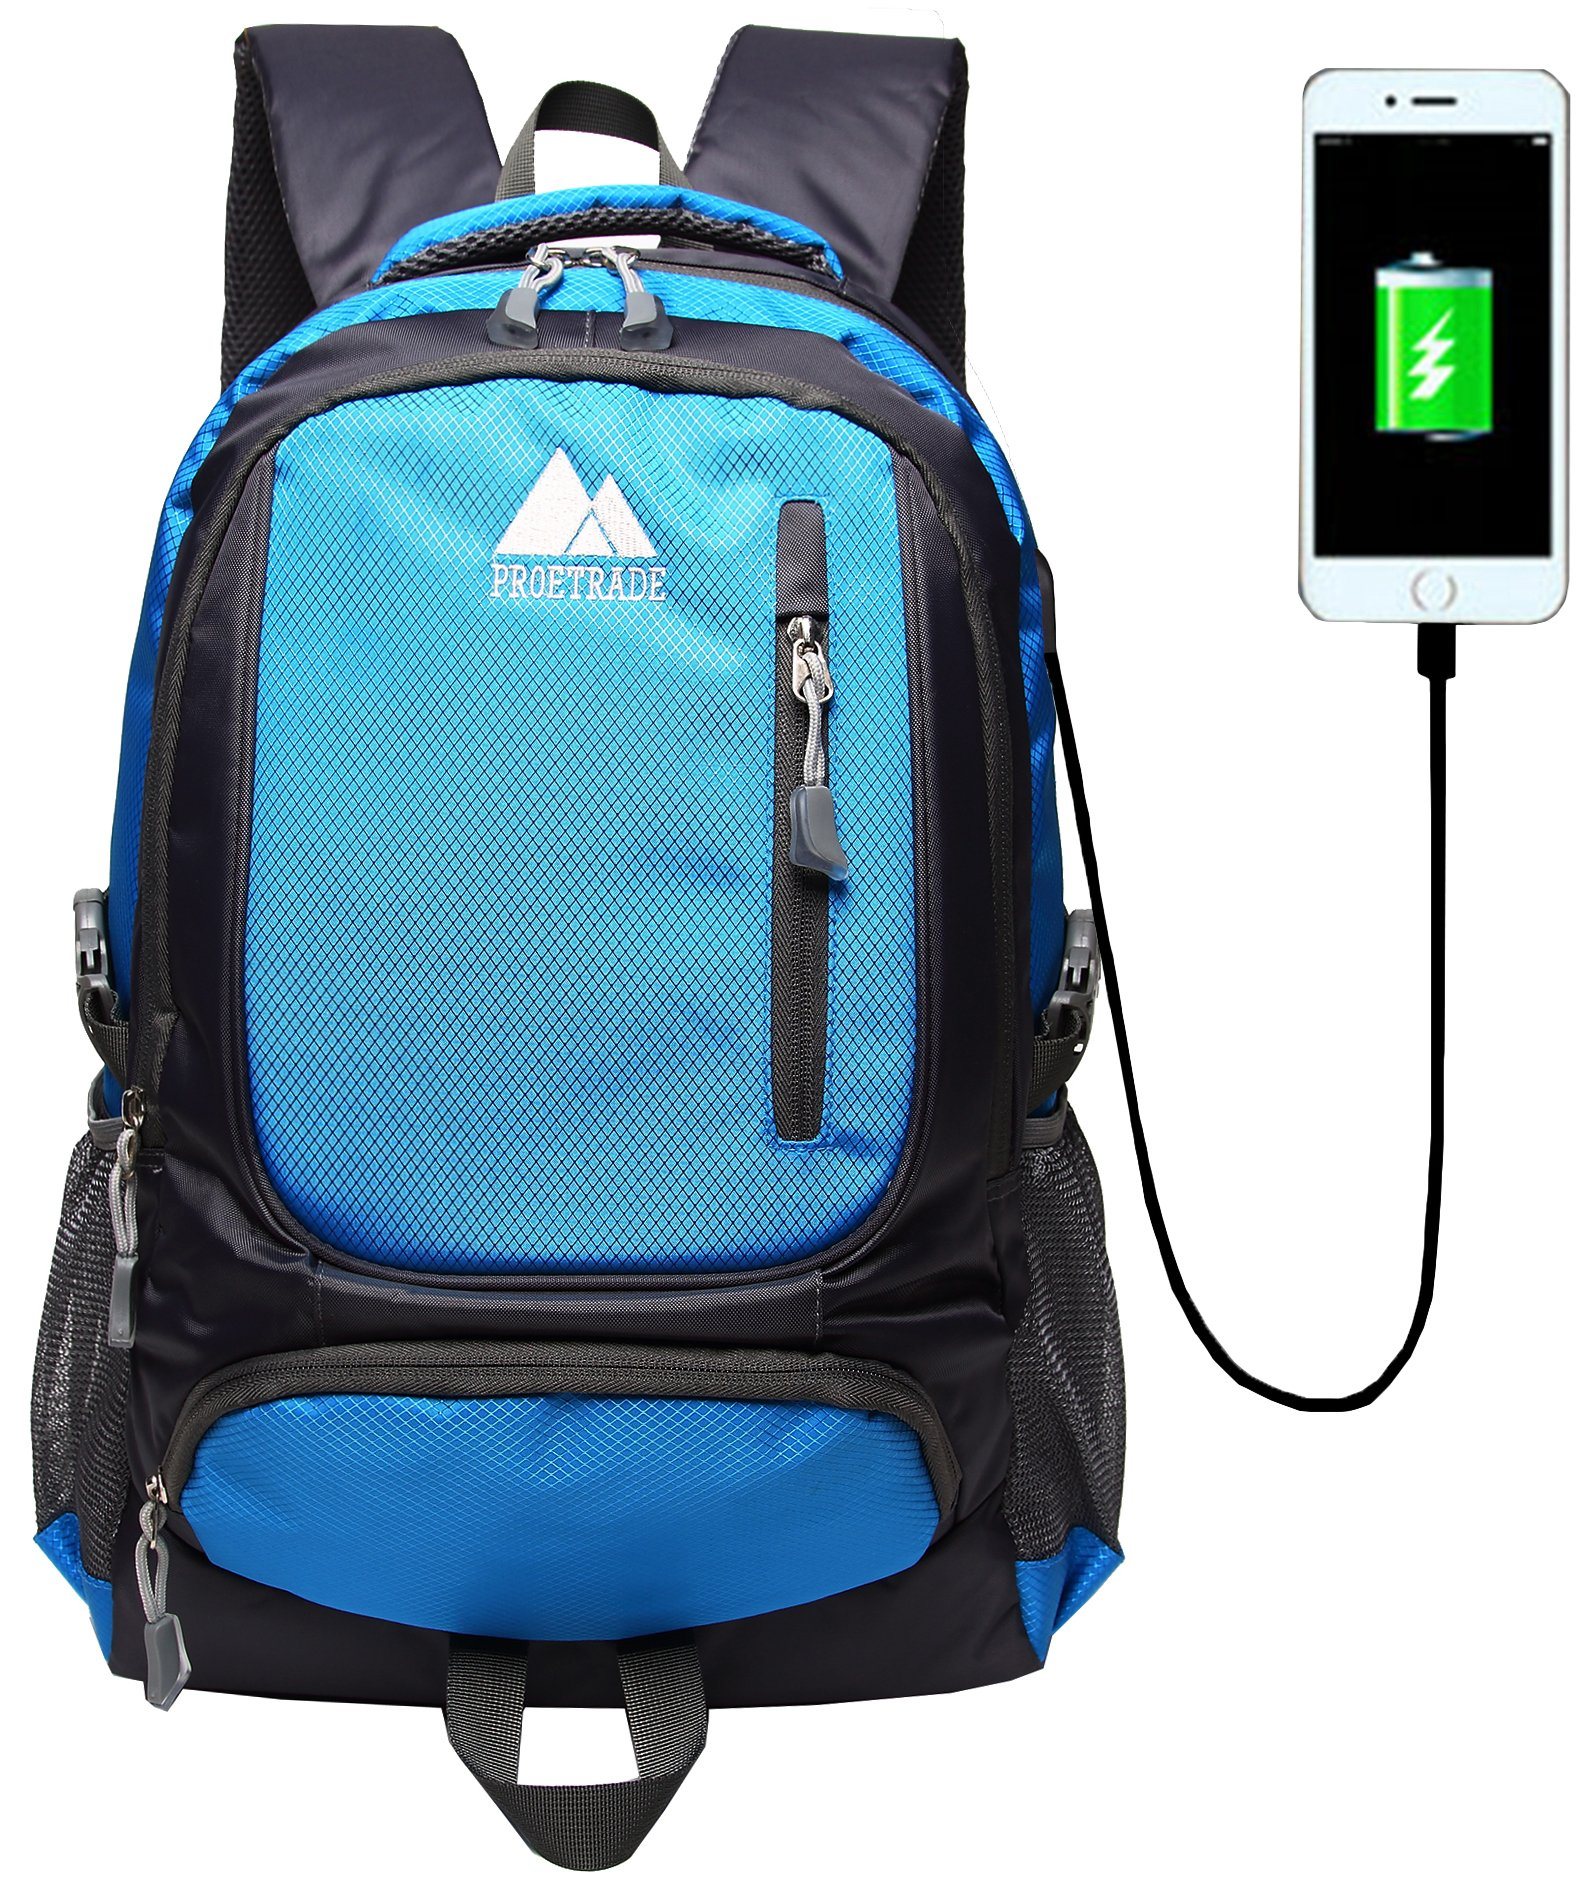 School Backpack Bookbag With USB Charging Port For College Travel Hiking Fit Laptop Up to 15.6 Inch Water Resistant (Blue)